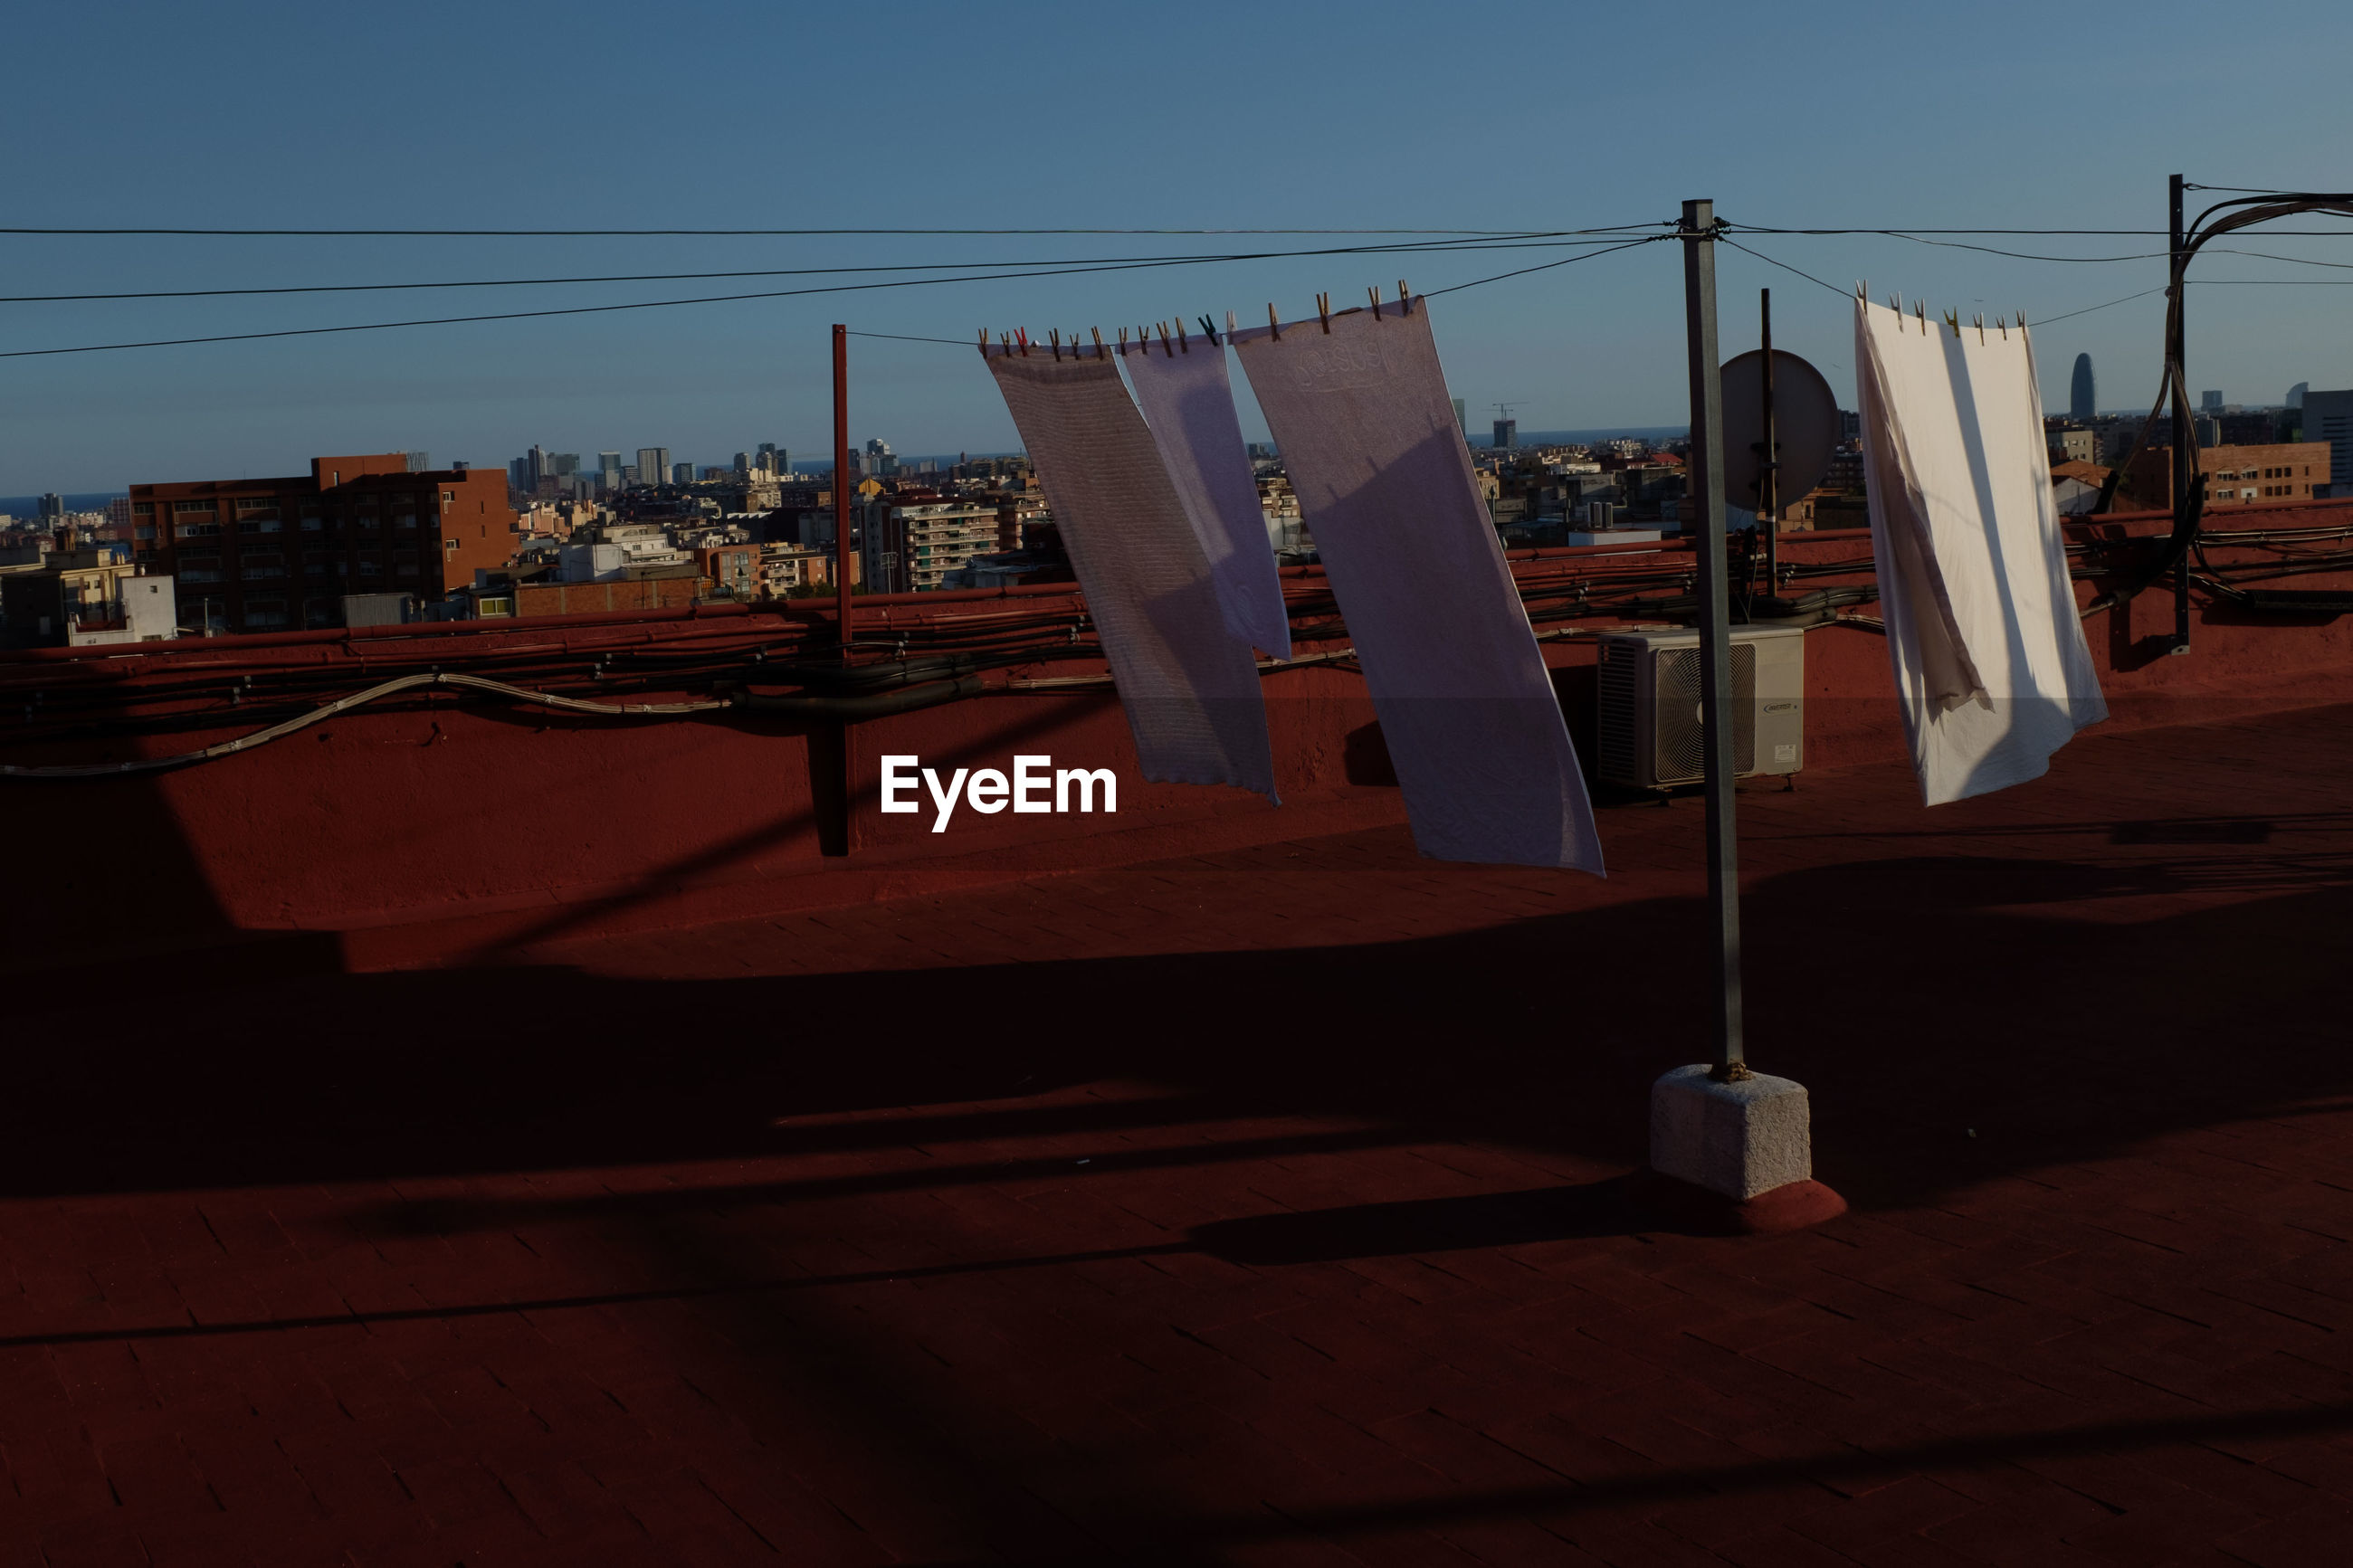 CLOTHES DRYING ON CLOTHESLINE AGAINST BUILDINGS